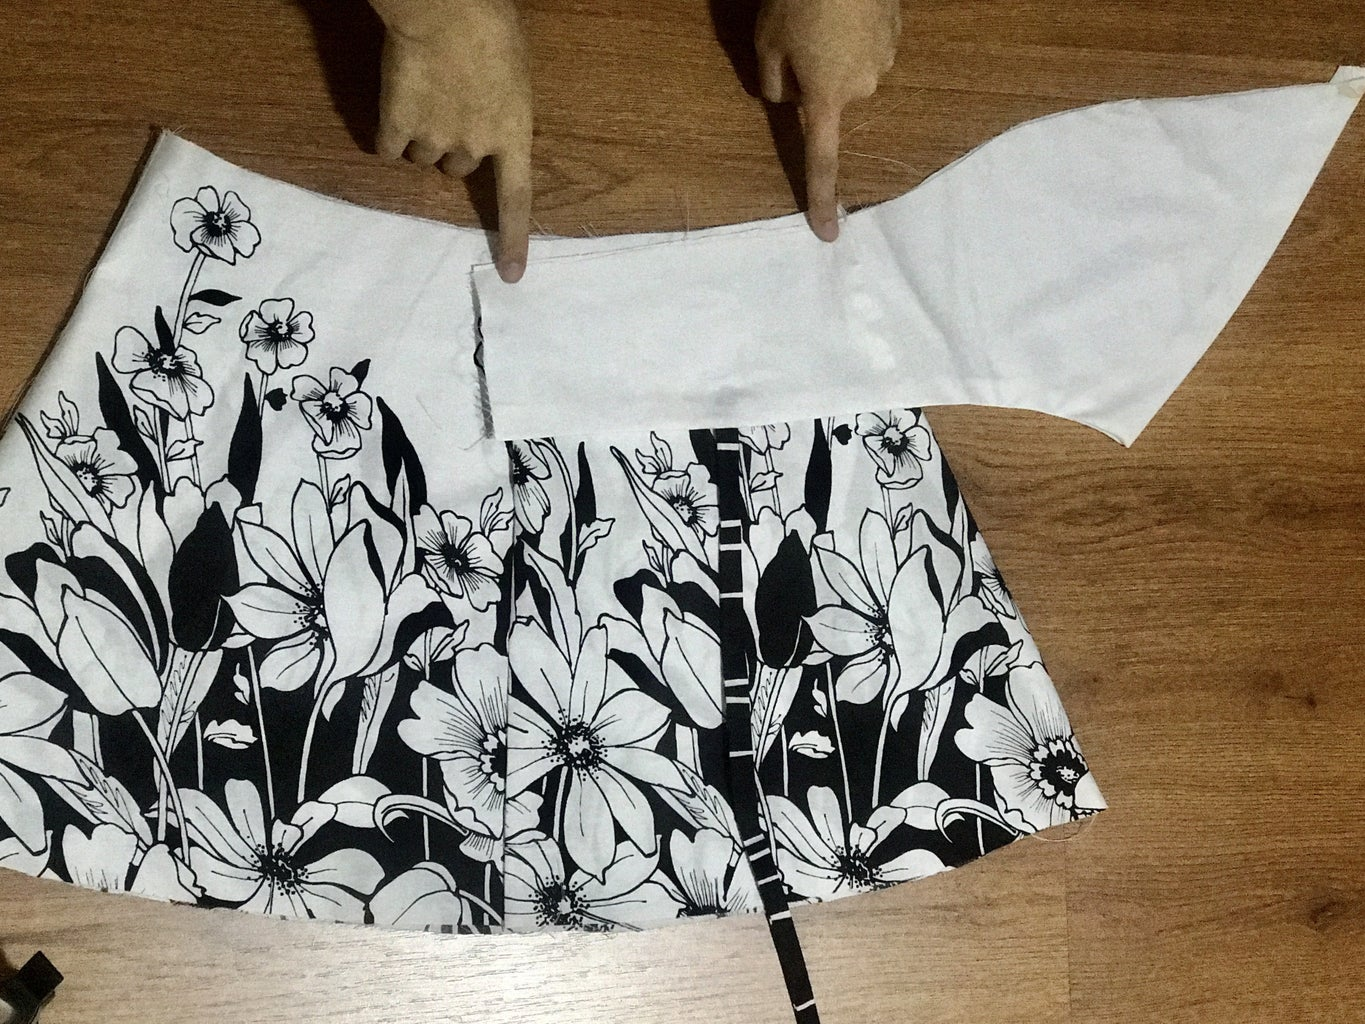 Construction of the Blouse